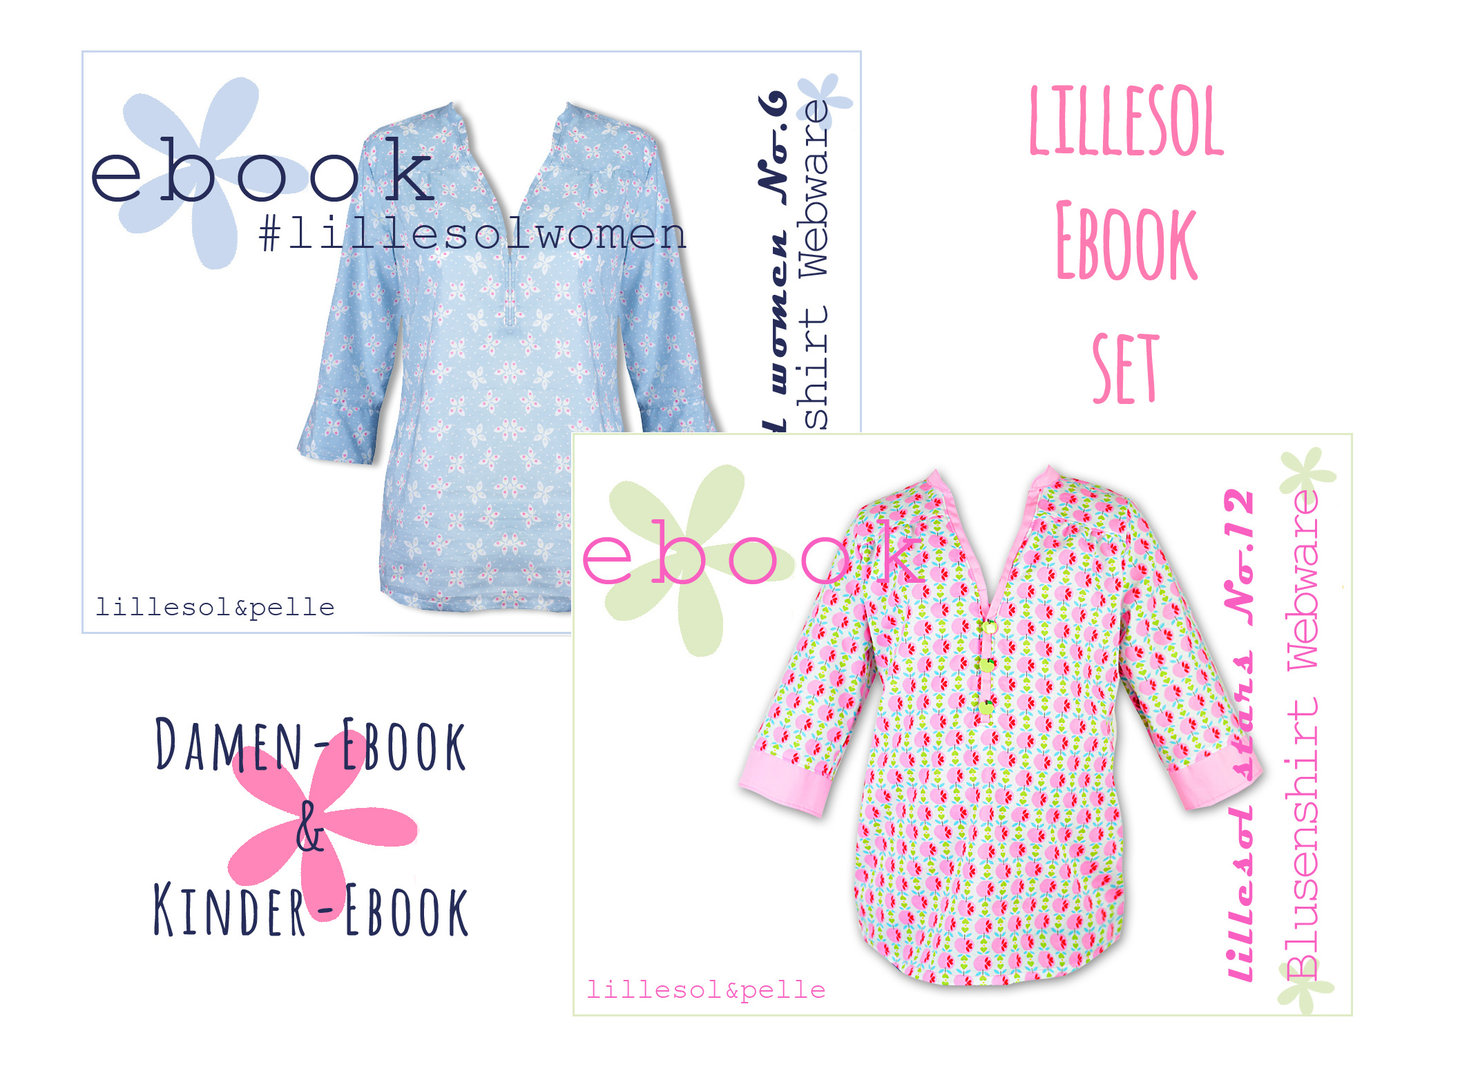 lillesol ebook set stars No.12 und women No.6